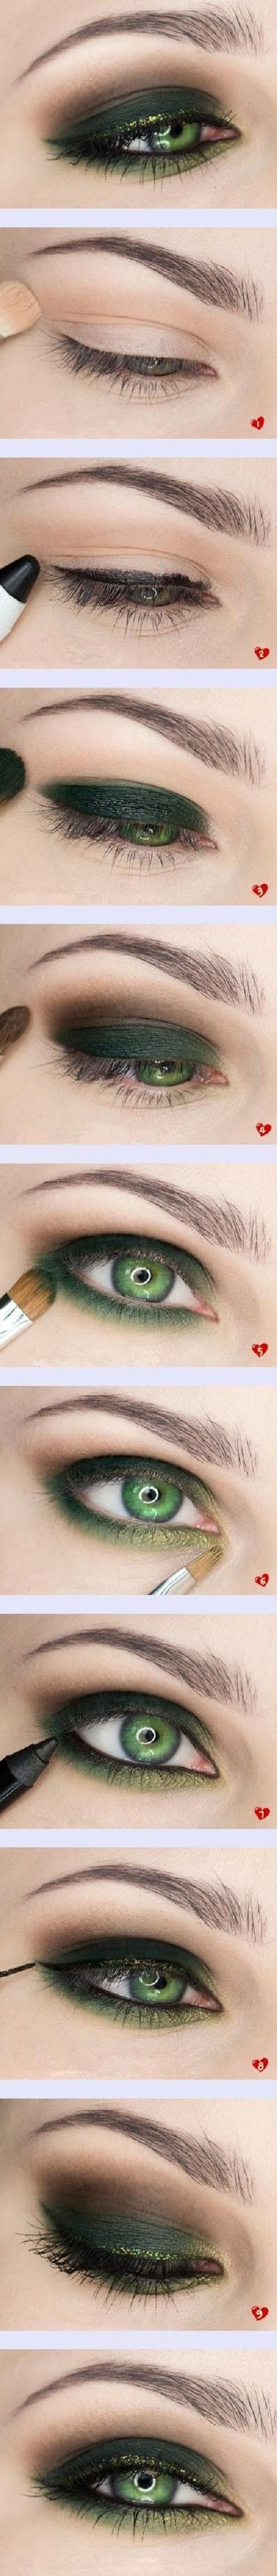 Make up for green eyes - The place where you craft your beauty..